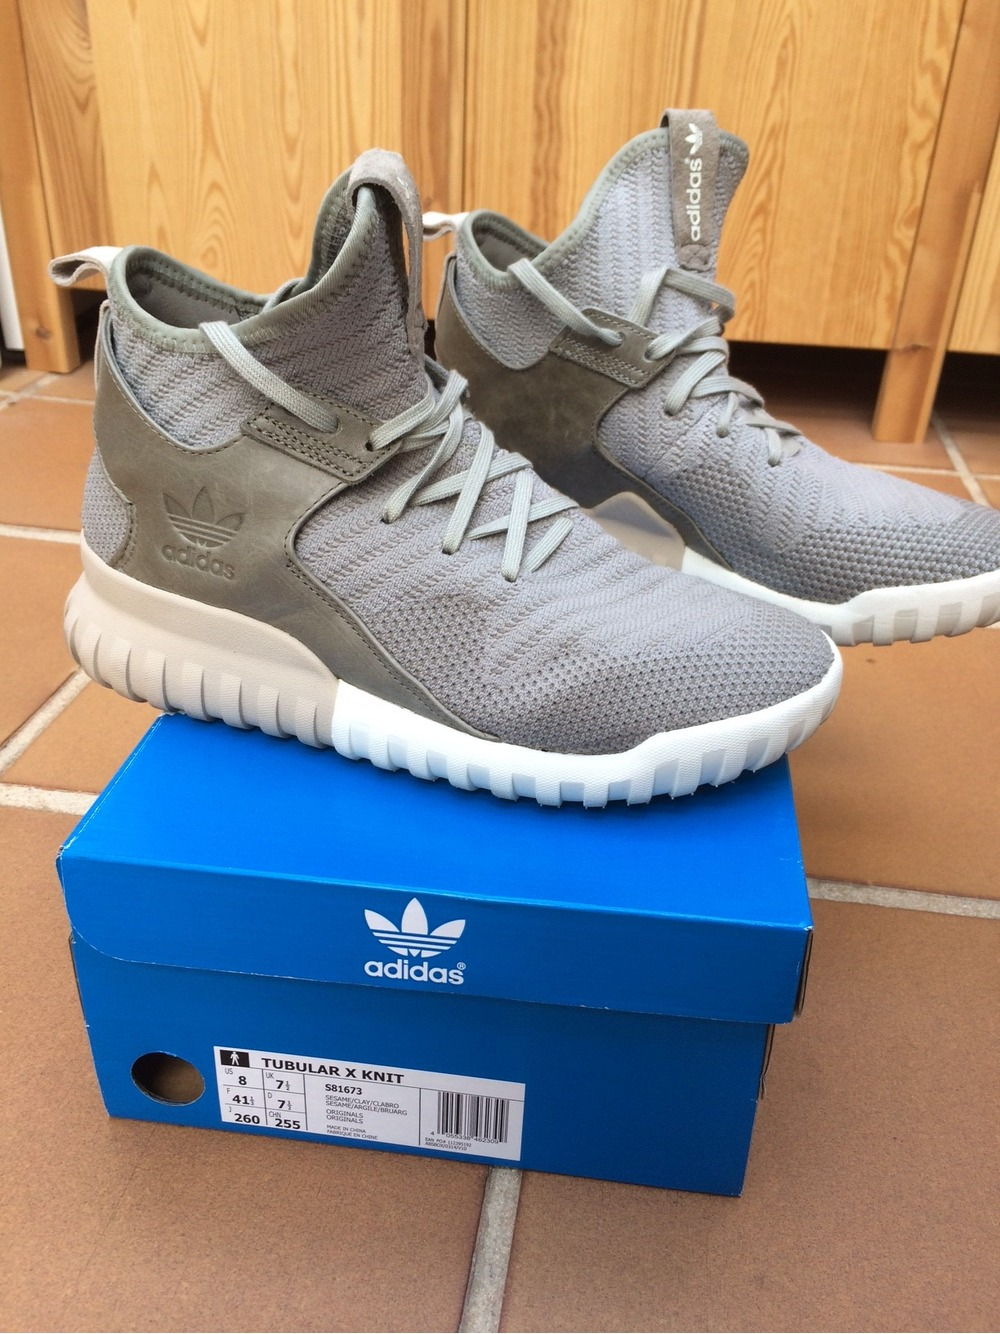 Adidas Originals Tubular X Primeknit Trainer Clear Granite Drome